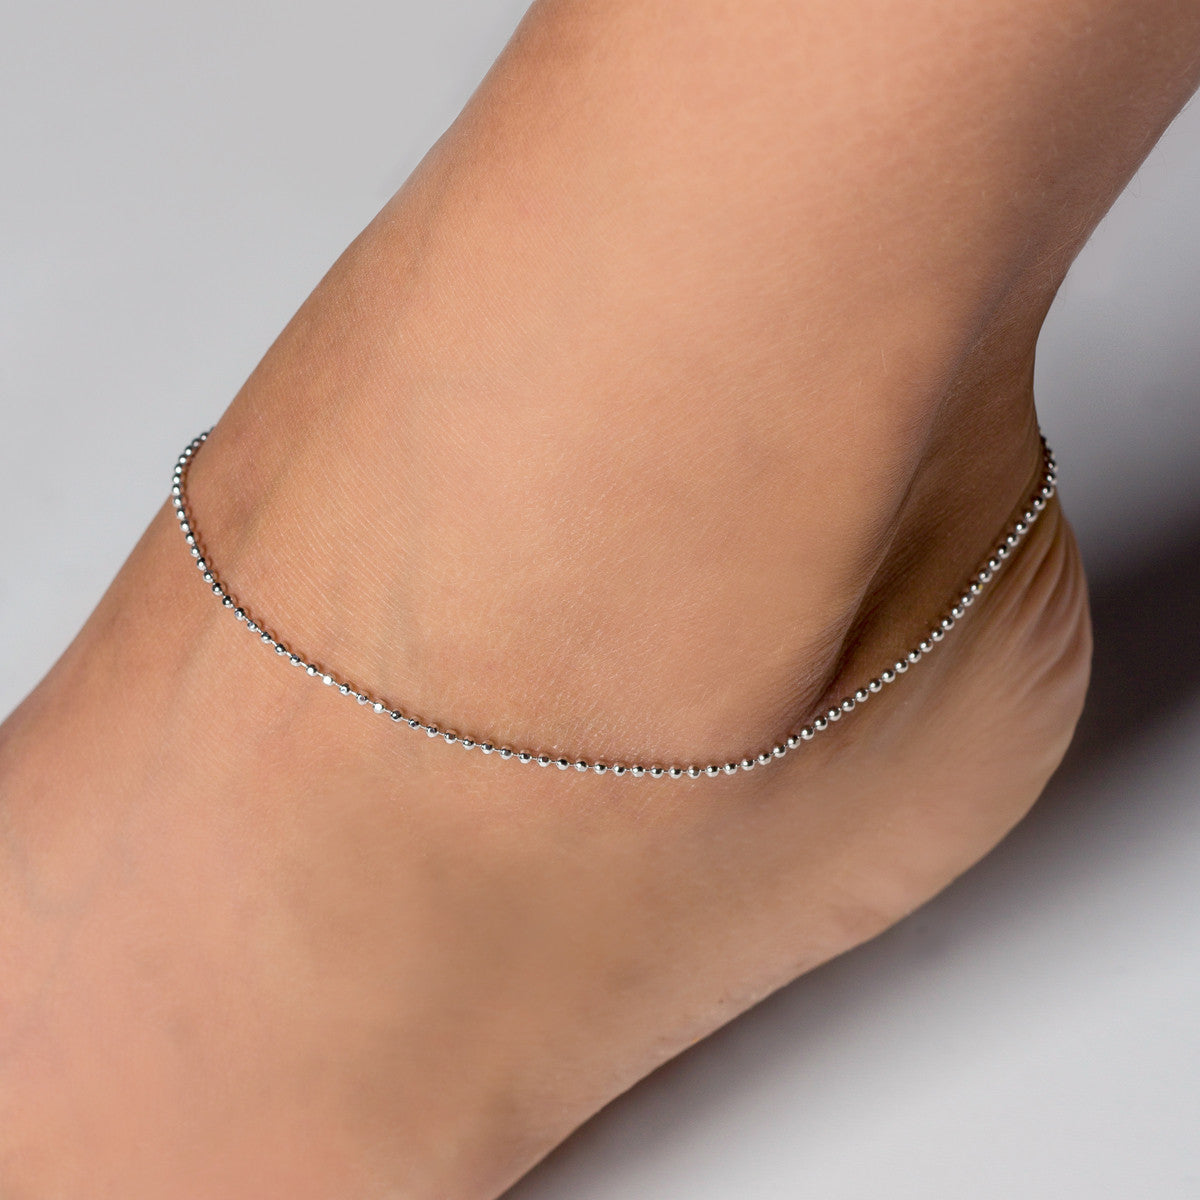 style anklet cute anklets fashionetter cool ideas ankle women bracelets